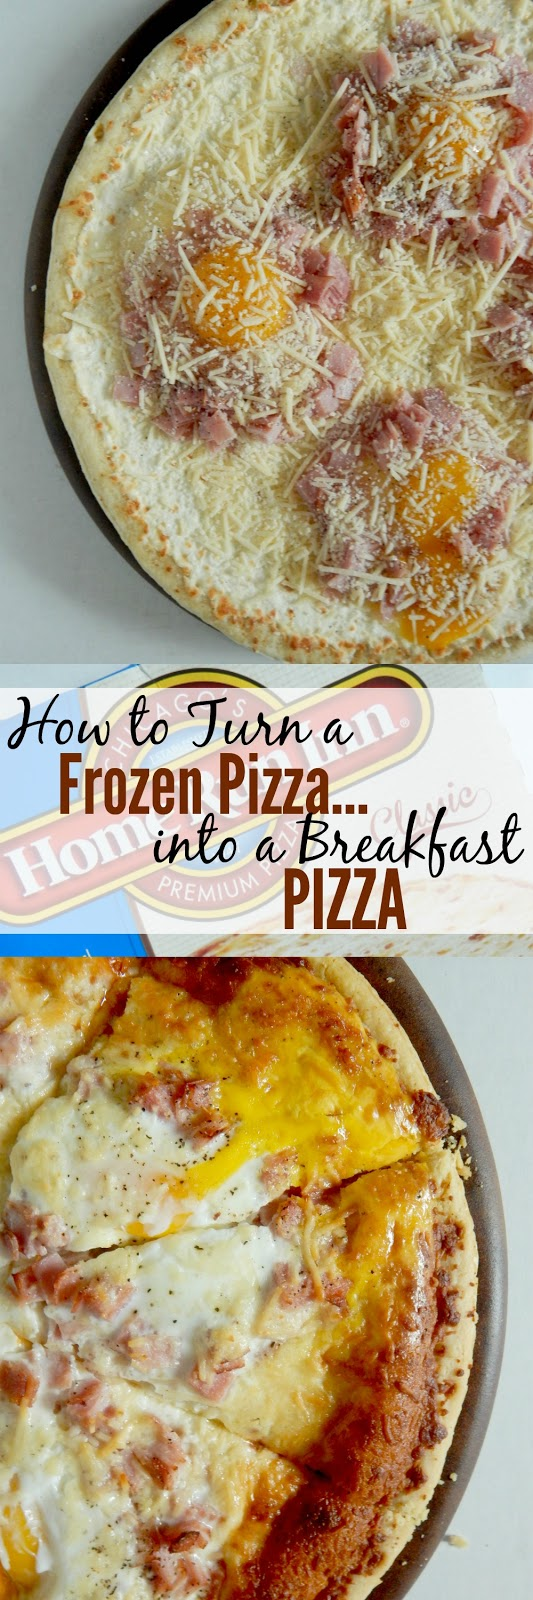 How to Turn a Frozen Pizza...Into a Breakfast Pizza...a few add-on's and this plain cheese pizza turns into a breakfast pizza! (sweetandsavoryfood.com)